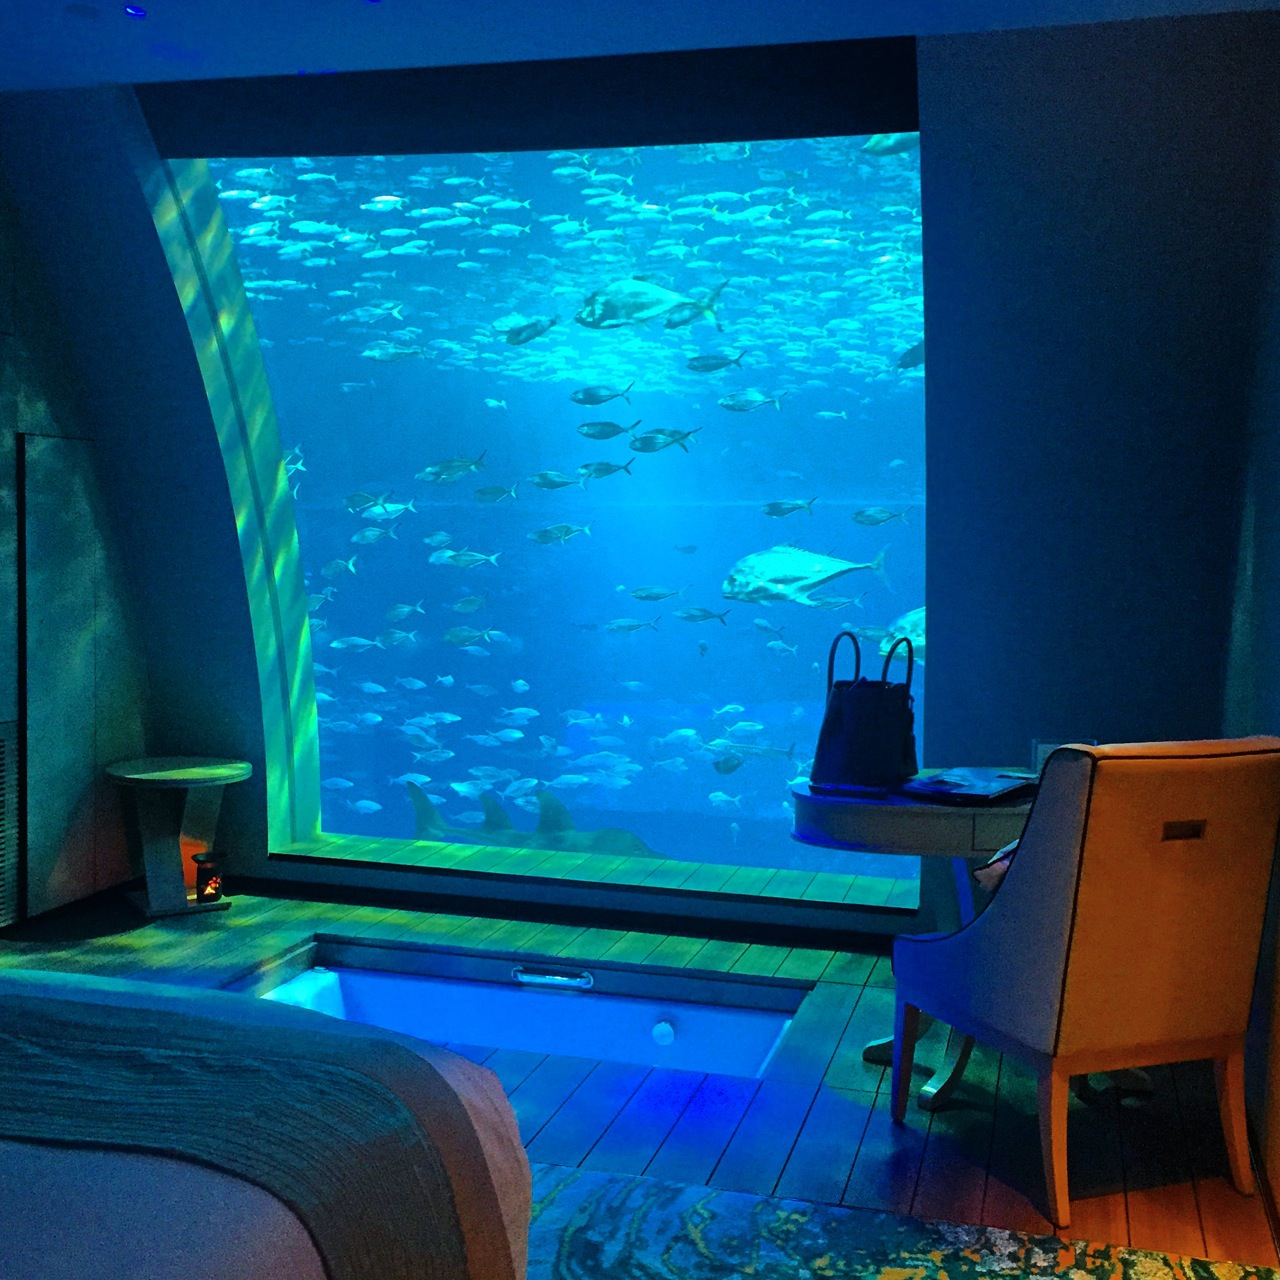 resort experience by swapping different room types for different room  experiences to their guests  You can find yourself sleeping in an aquarium. Sleeping in an Aquarium at the Equarius Hotel Singapore   WORLD OF